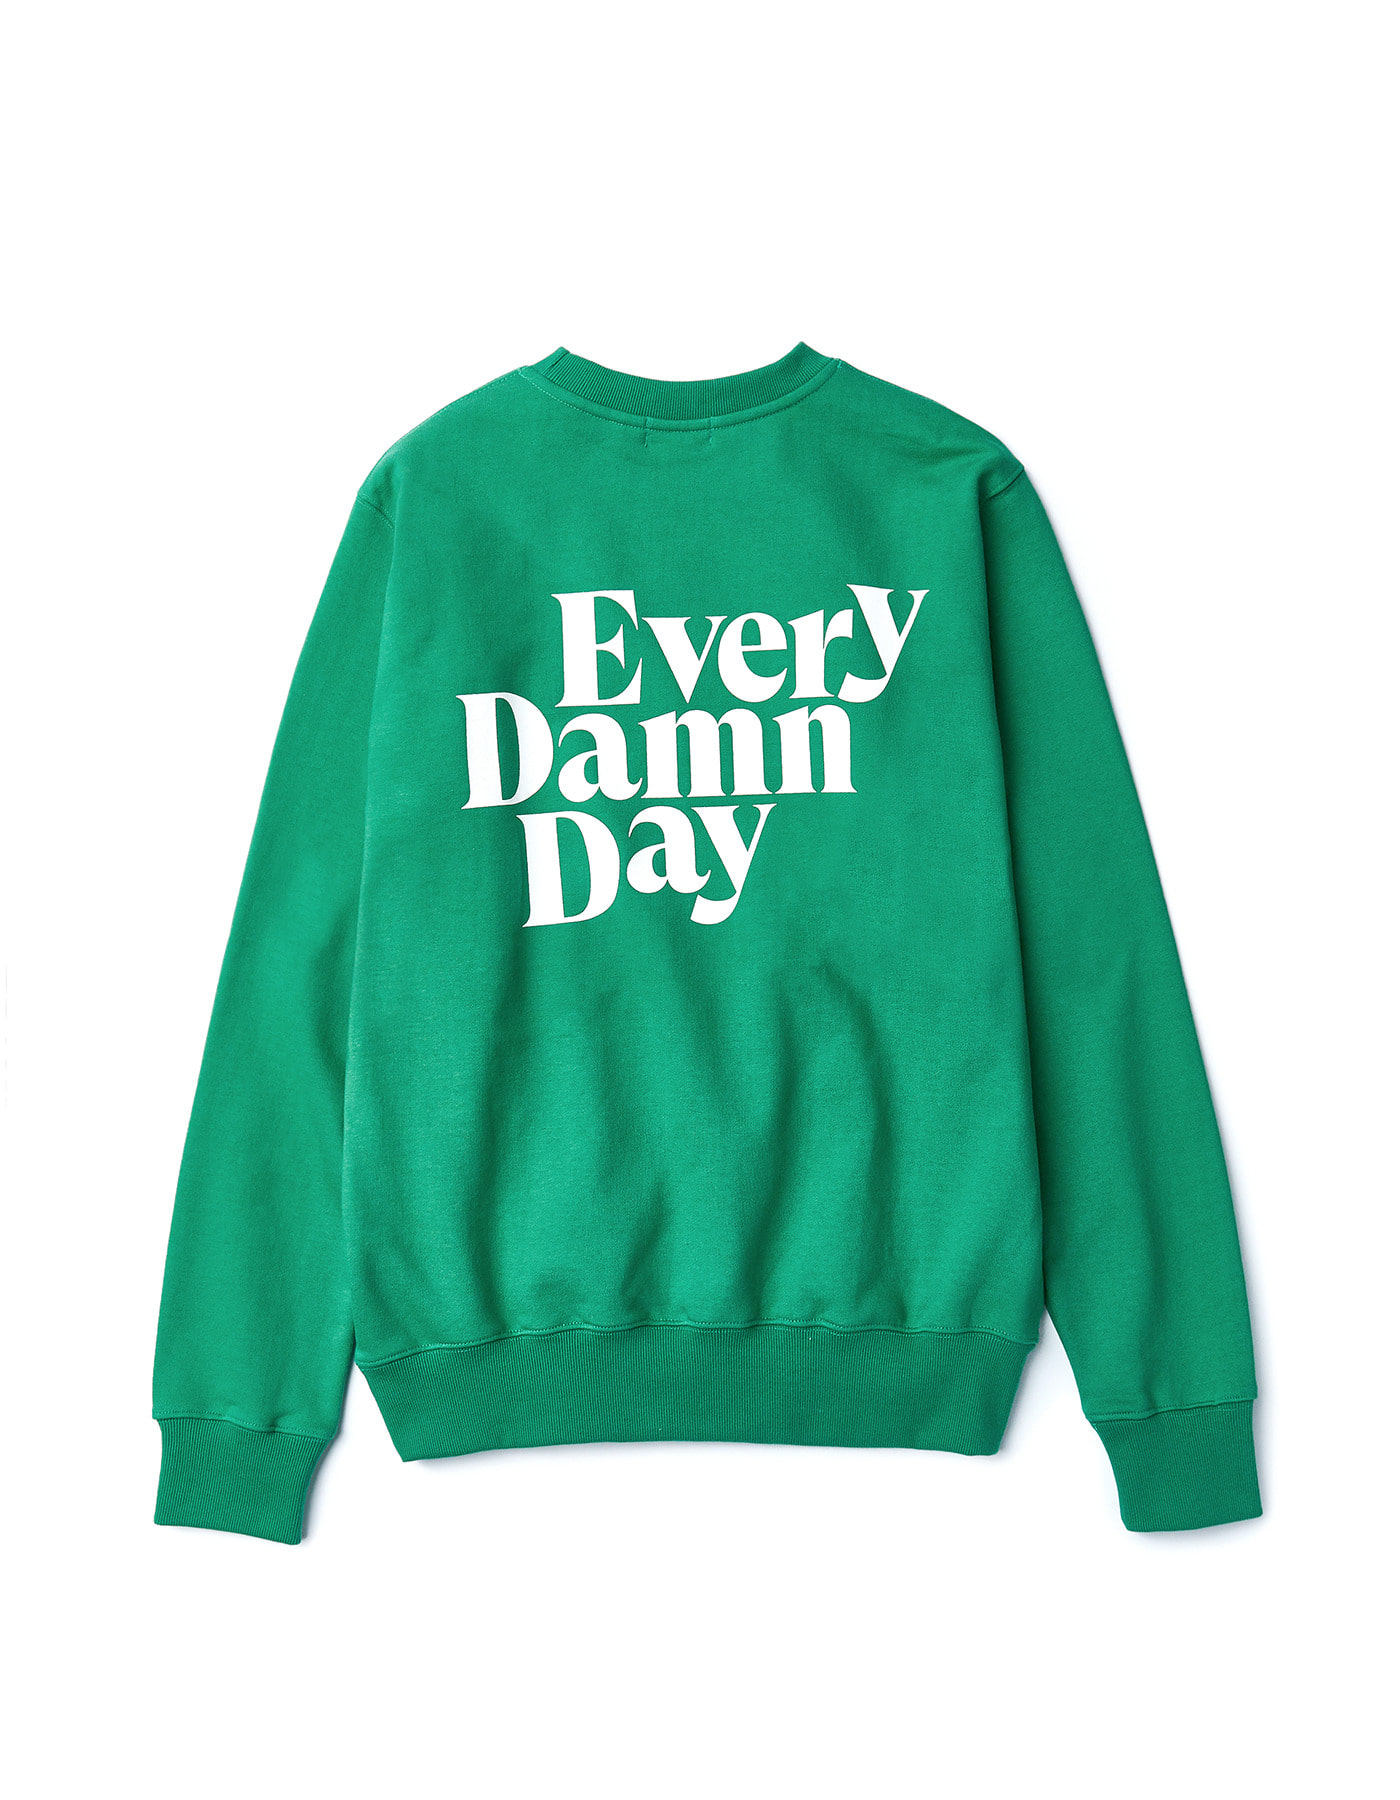 Every Damn Day Crewneck - Green